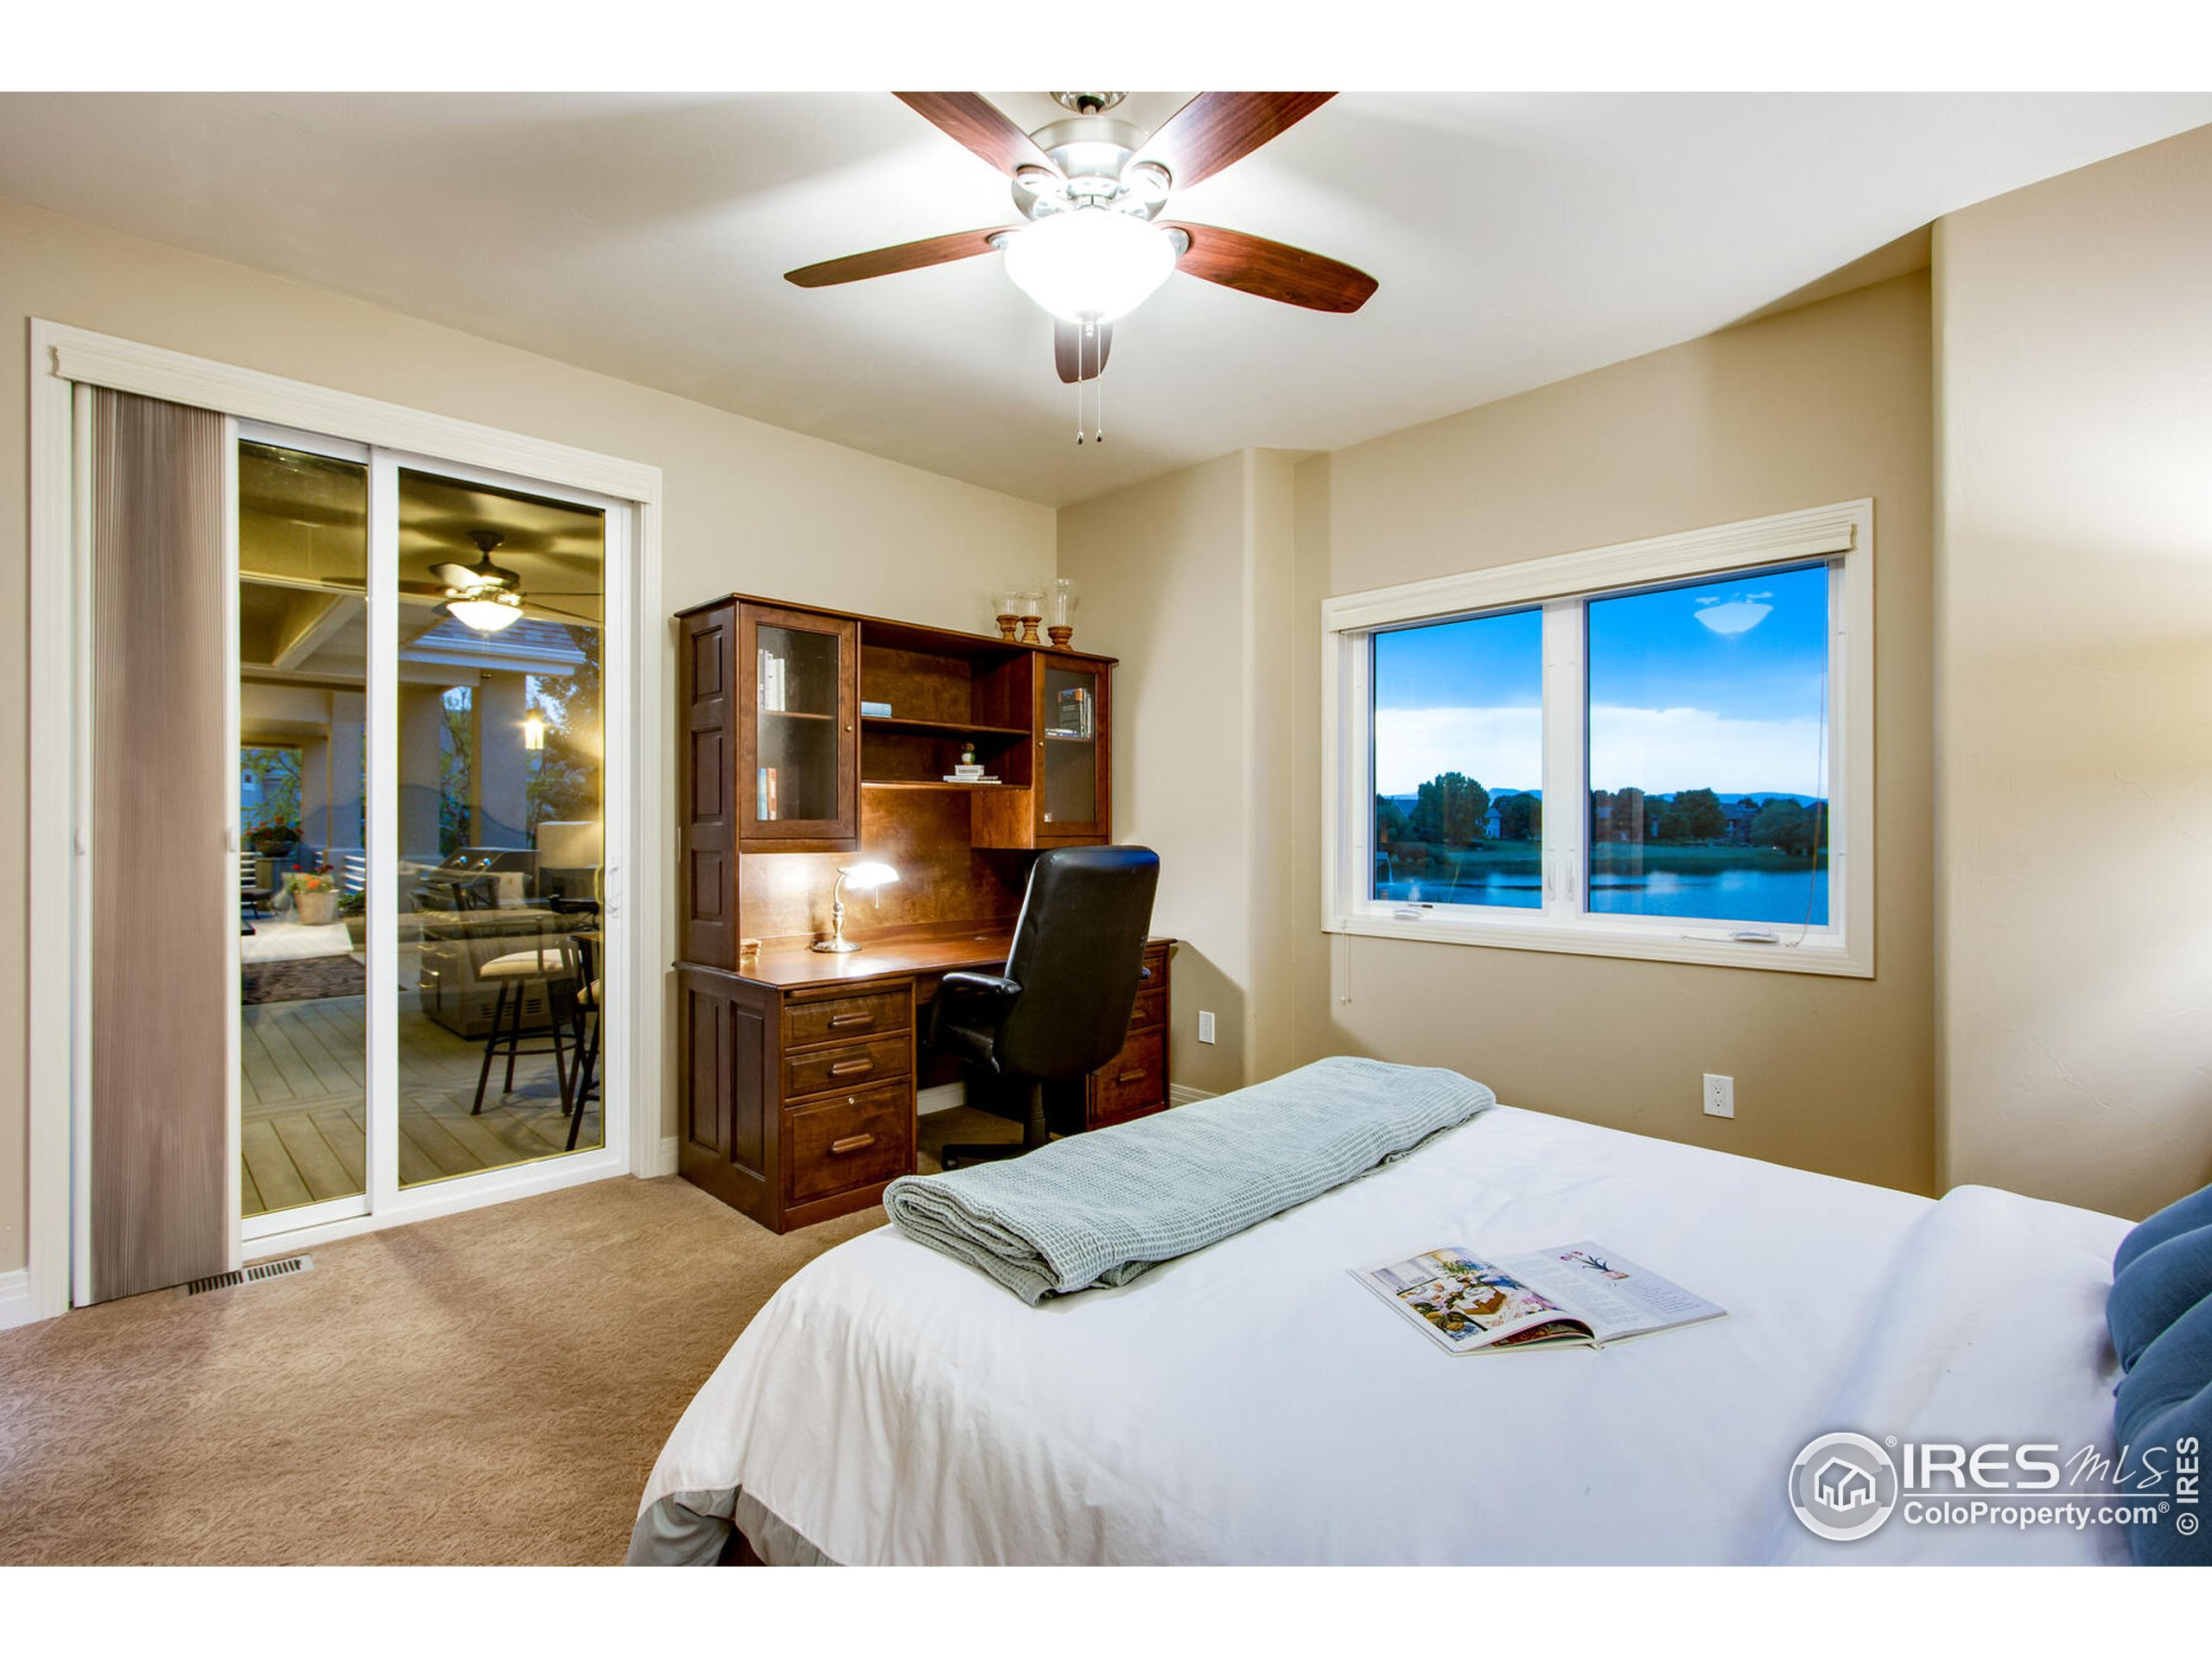 Main floor oversized bedroom # 2 with walk-in closet & private access to upper balcony